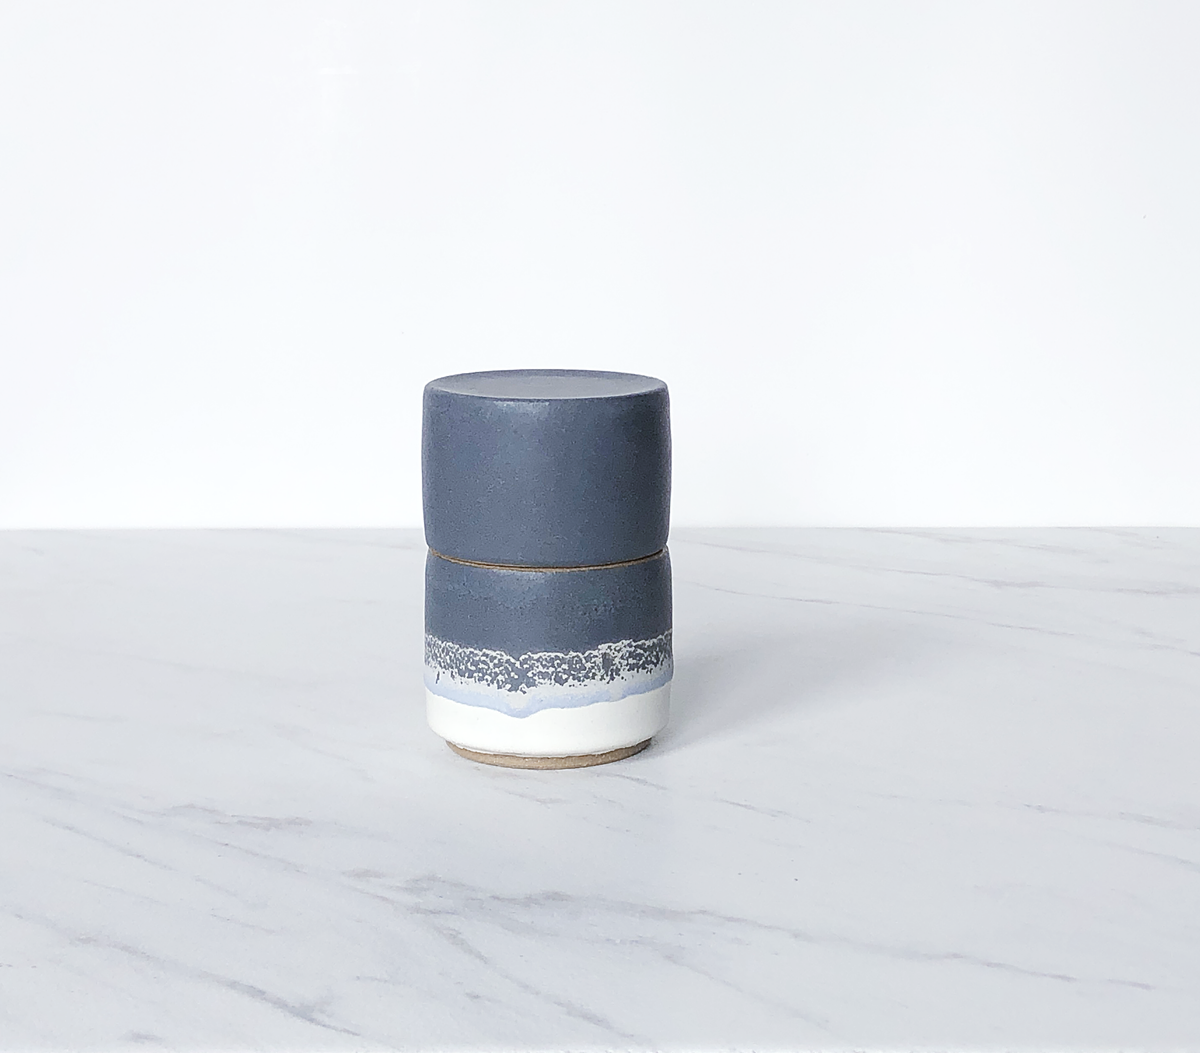 Image of Ceramic match holder with lid, tan clay, glazed in matte navy + cream